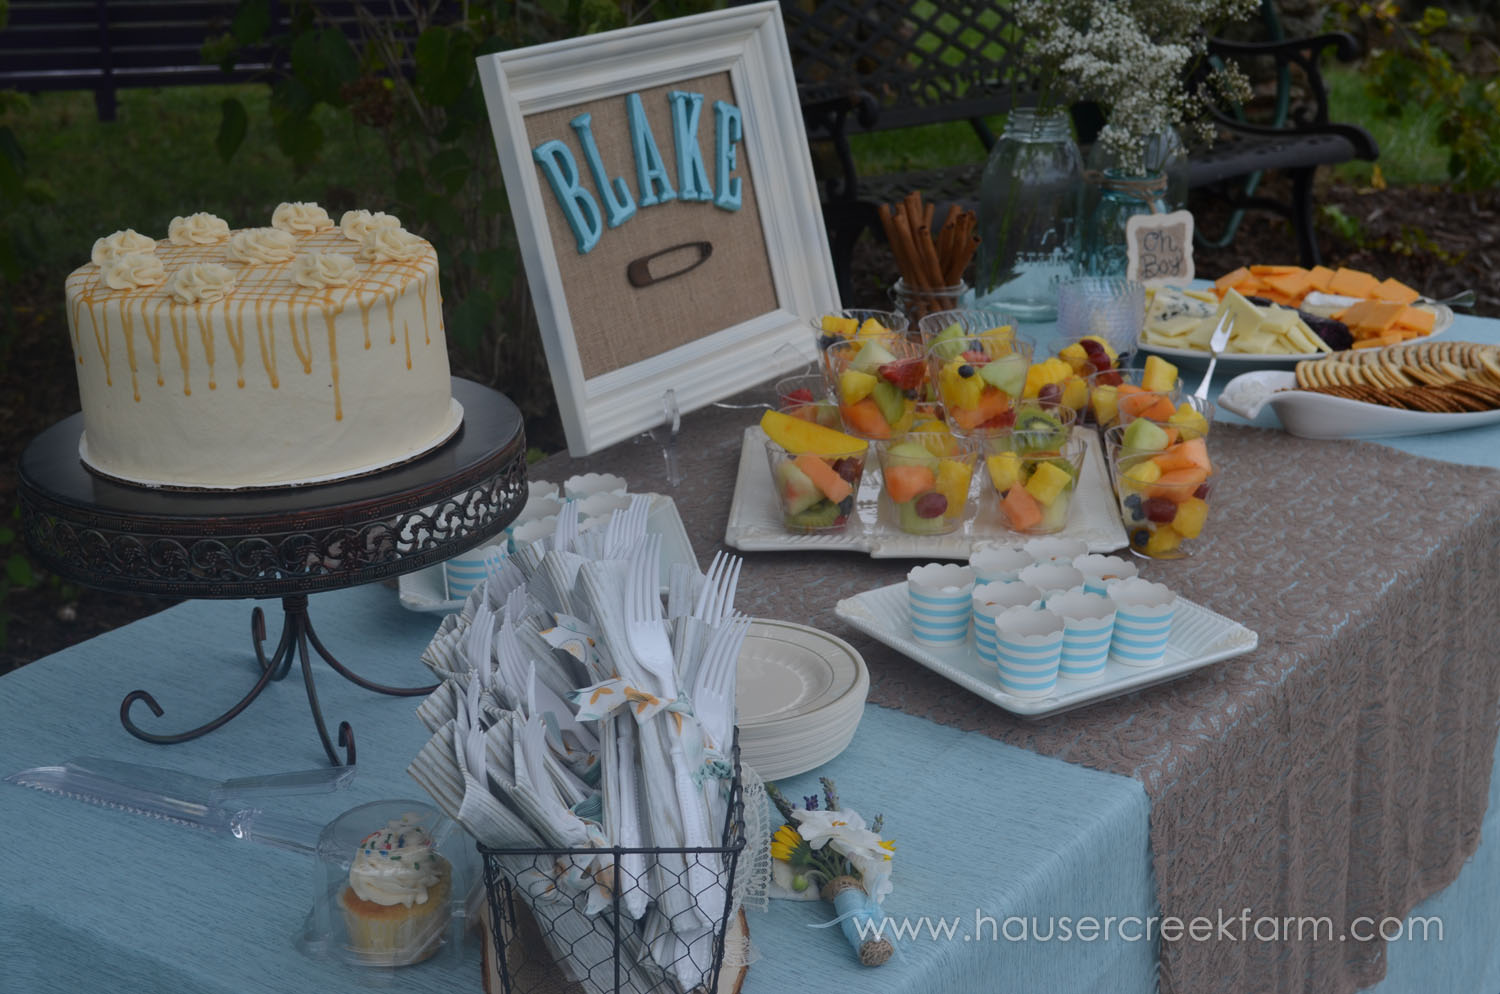 cake-and-fruit-and-cheese-for-afternoon-baby-shower-hosted-at-nc-farm-036.jpg